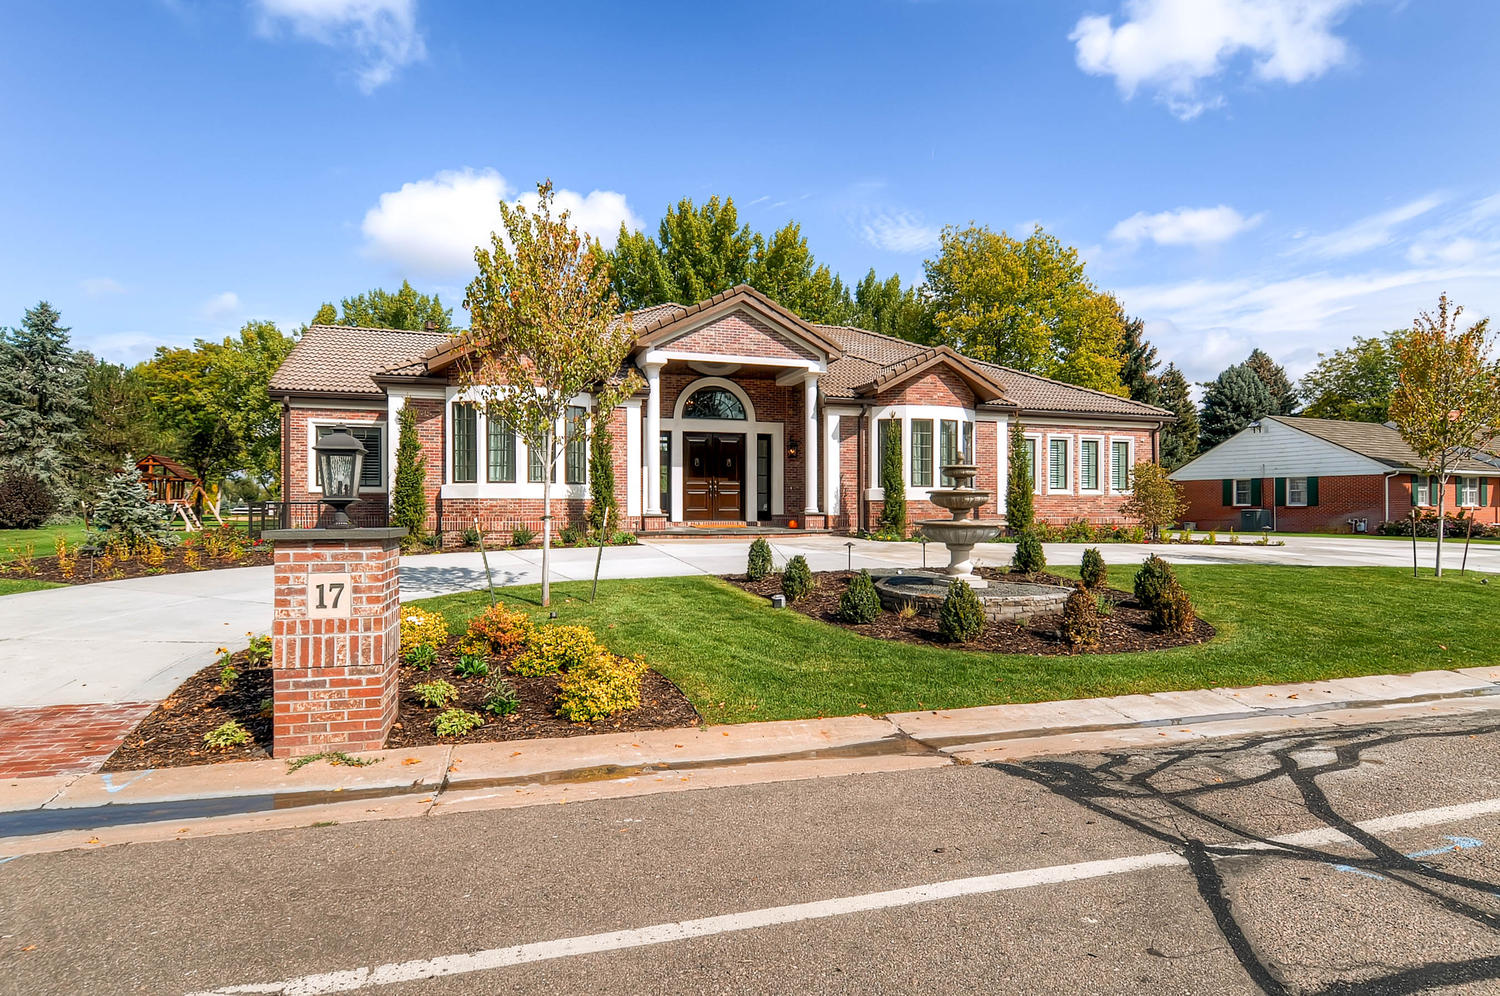 17-Niblick-Ln-Littleton-CO-large-002-Exterior-Front-1500x997-72dpi